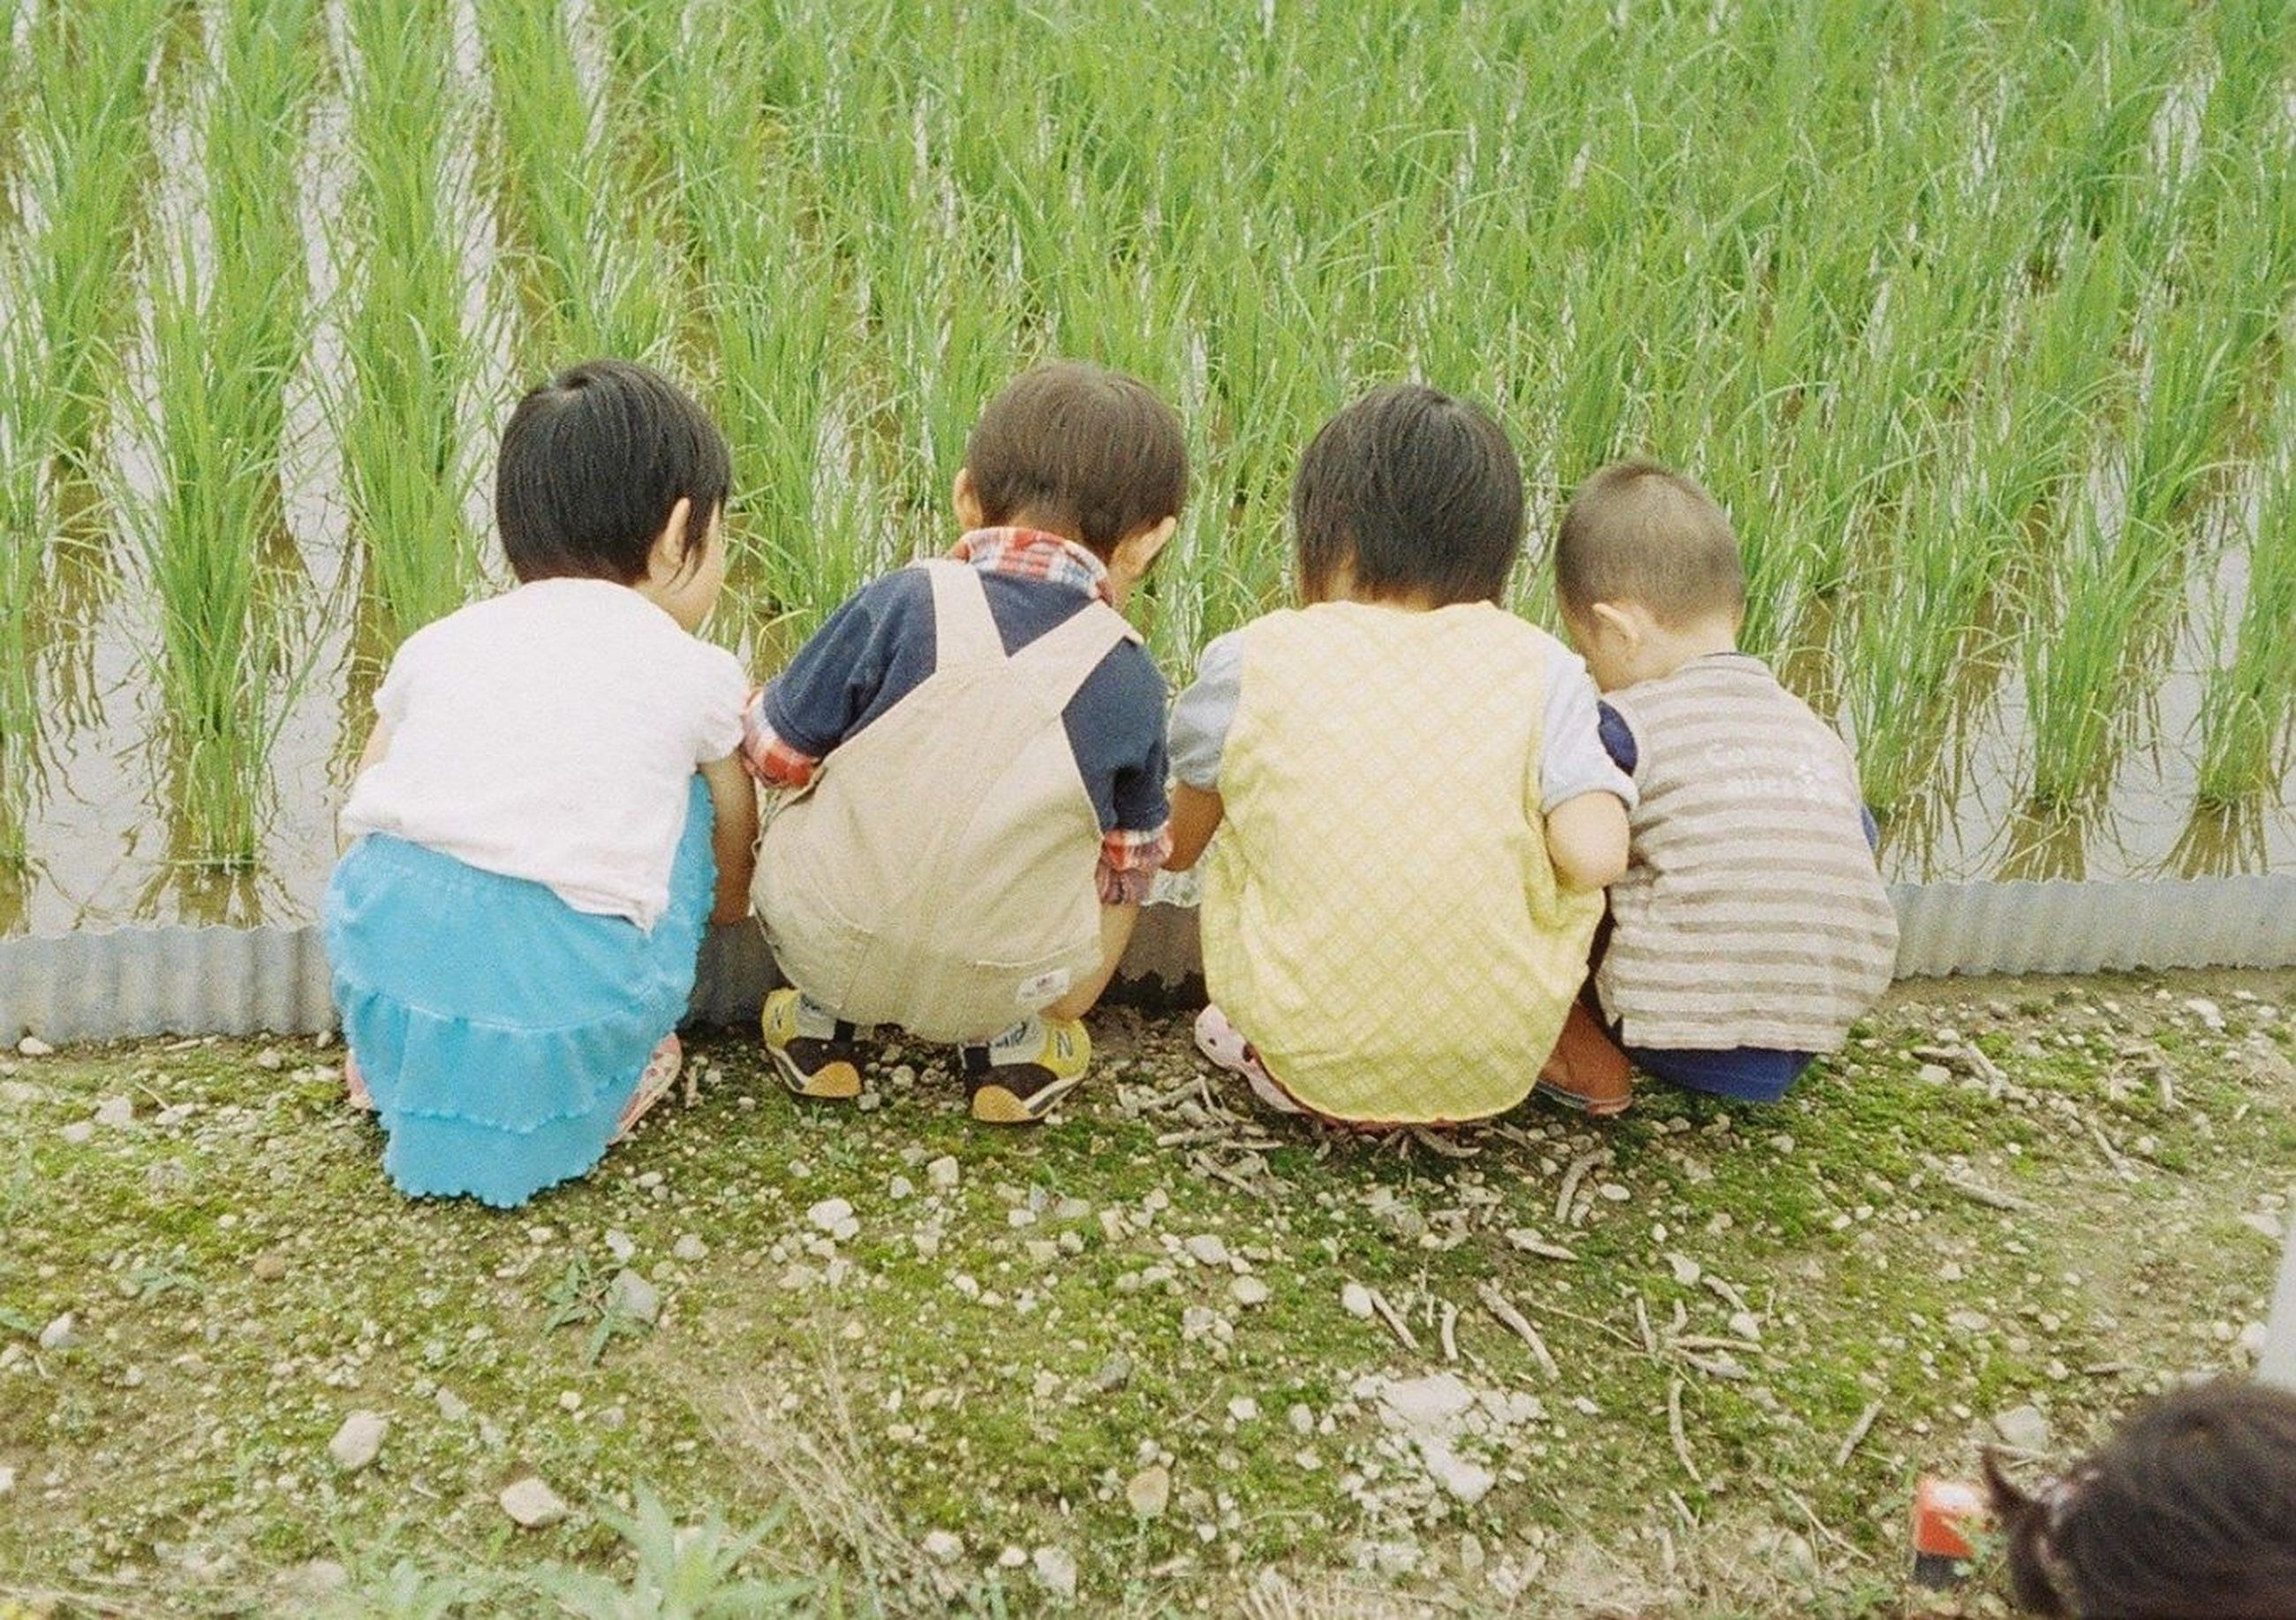 togetherness, bonding, lifestyles, leisure activity, love, men, rear view, grass, friendship, family, person, casual clothing, sitting, boys, field, childhood, family with one child